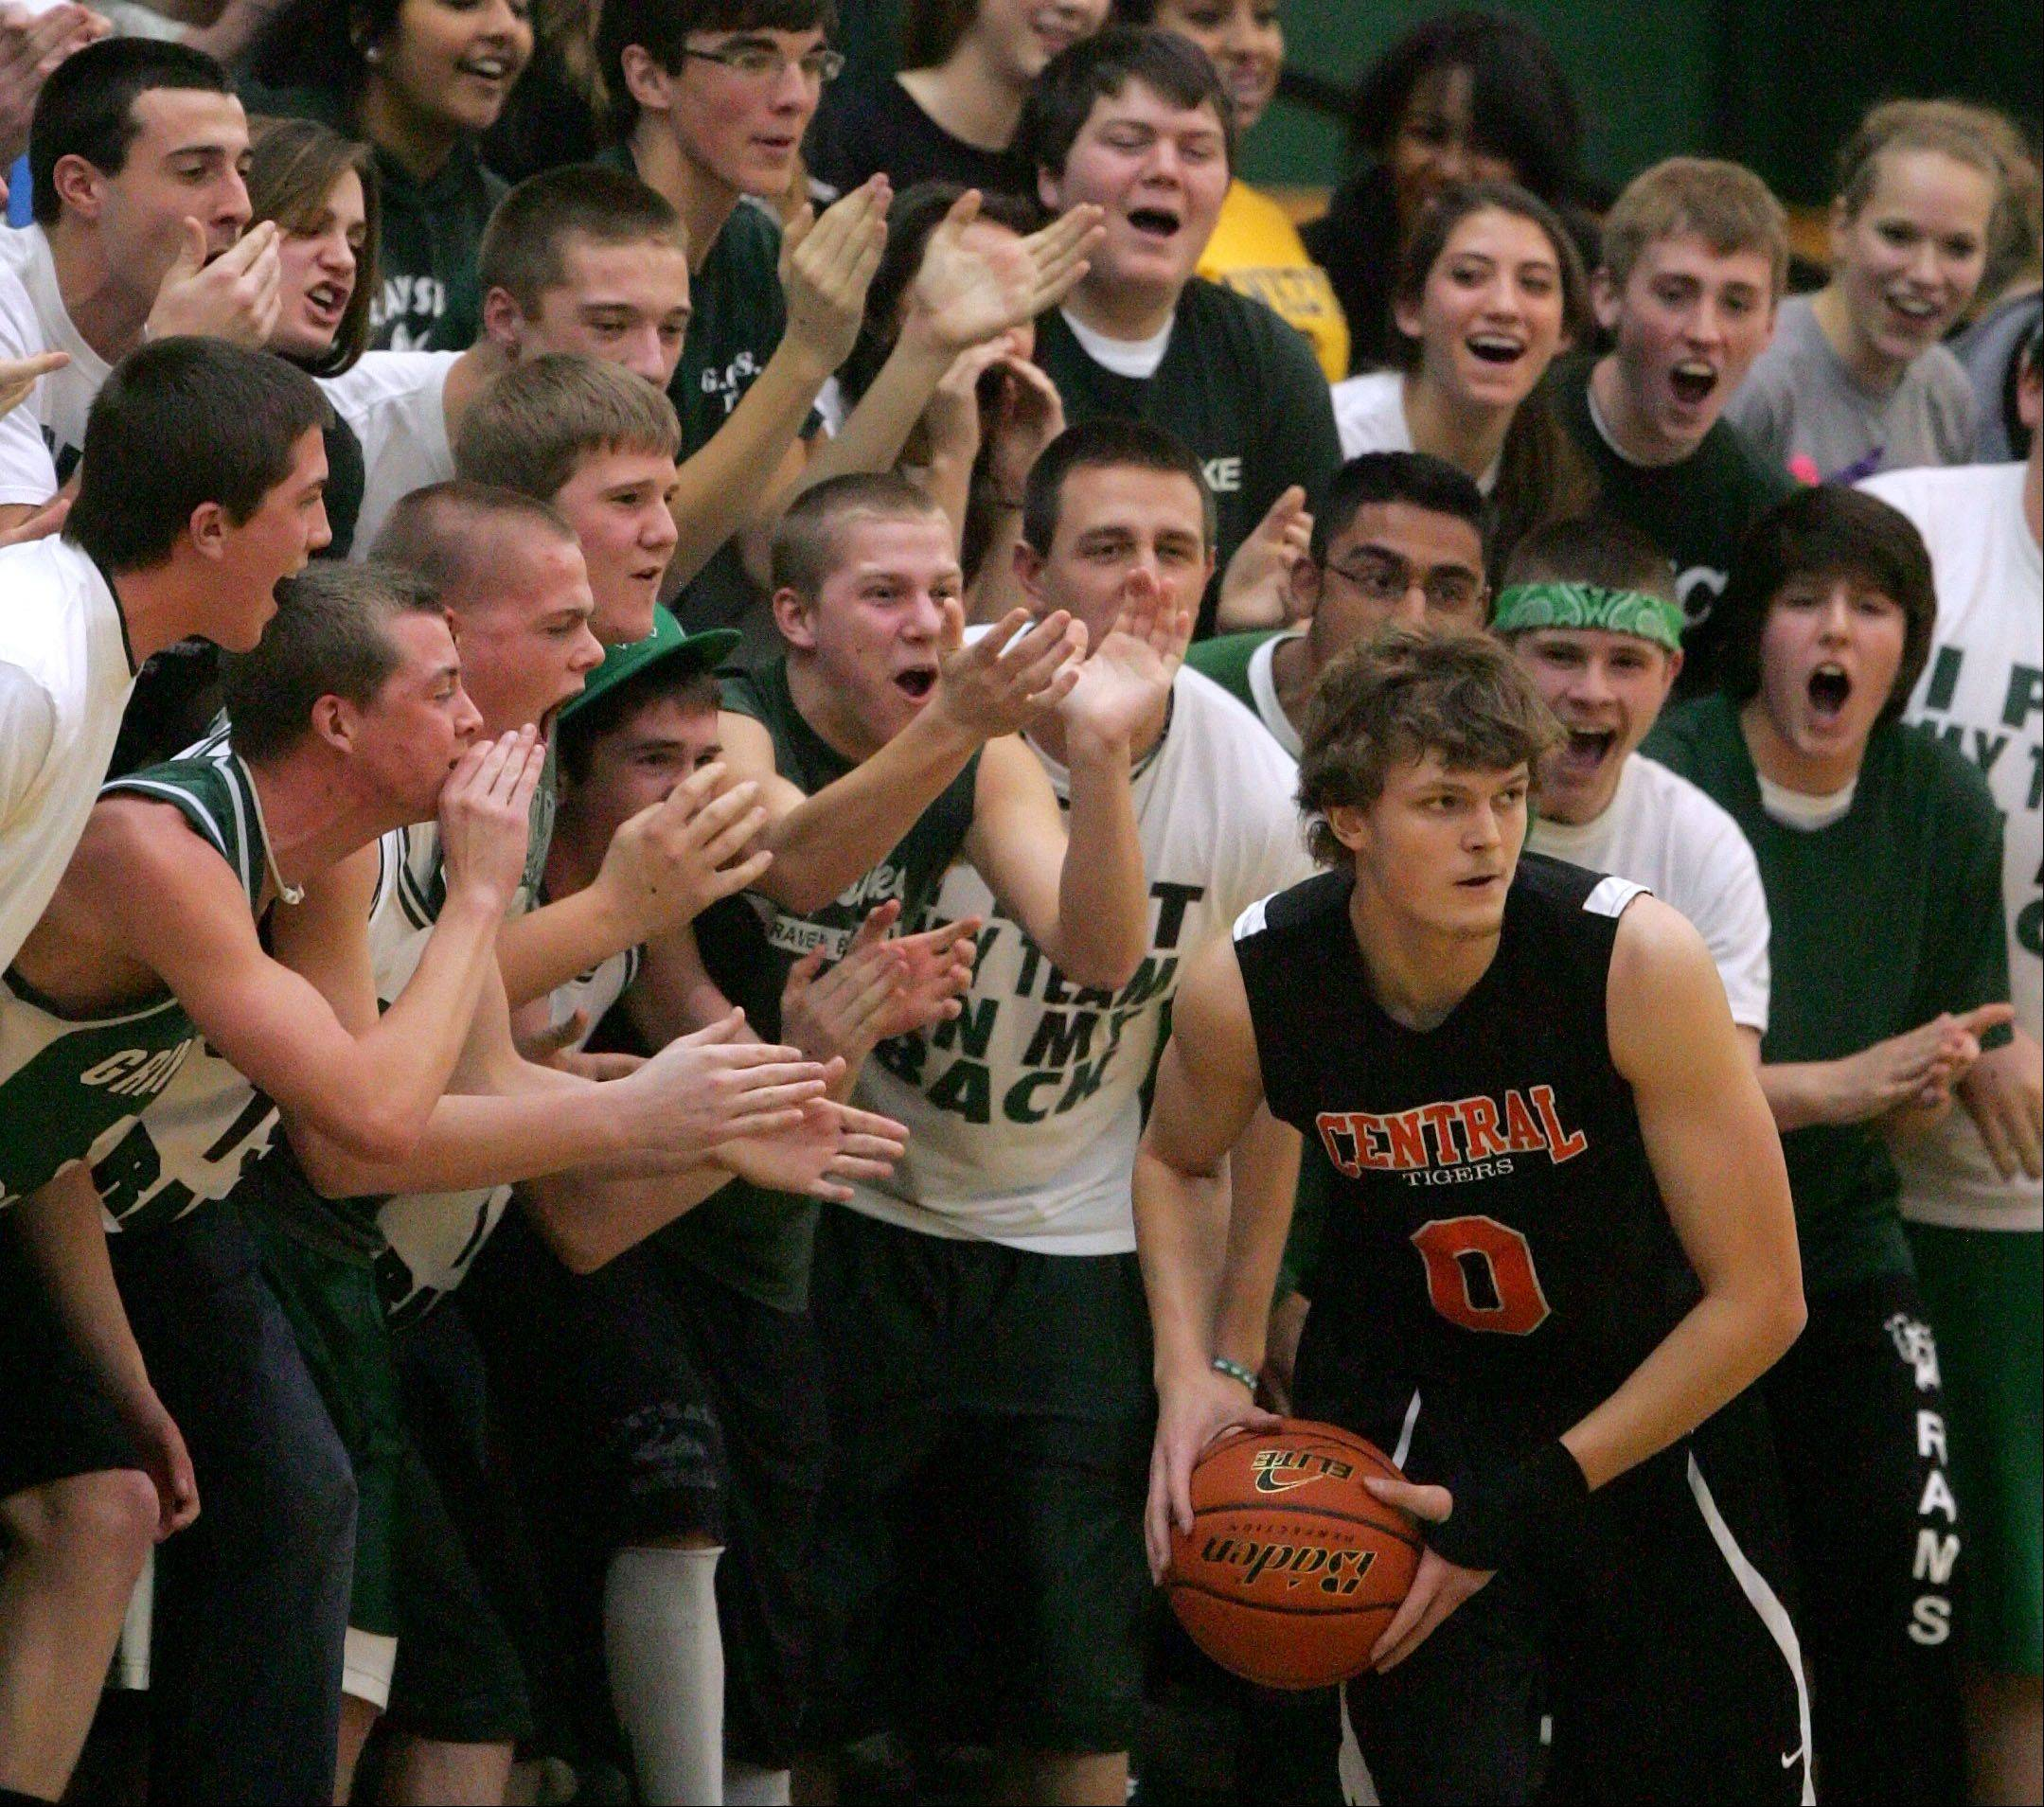 Grayslake Central's fans harass Crystal Lake Central's Nick Decoster on an inbounds pass Wednesday night at Grayslake Central.